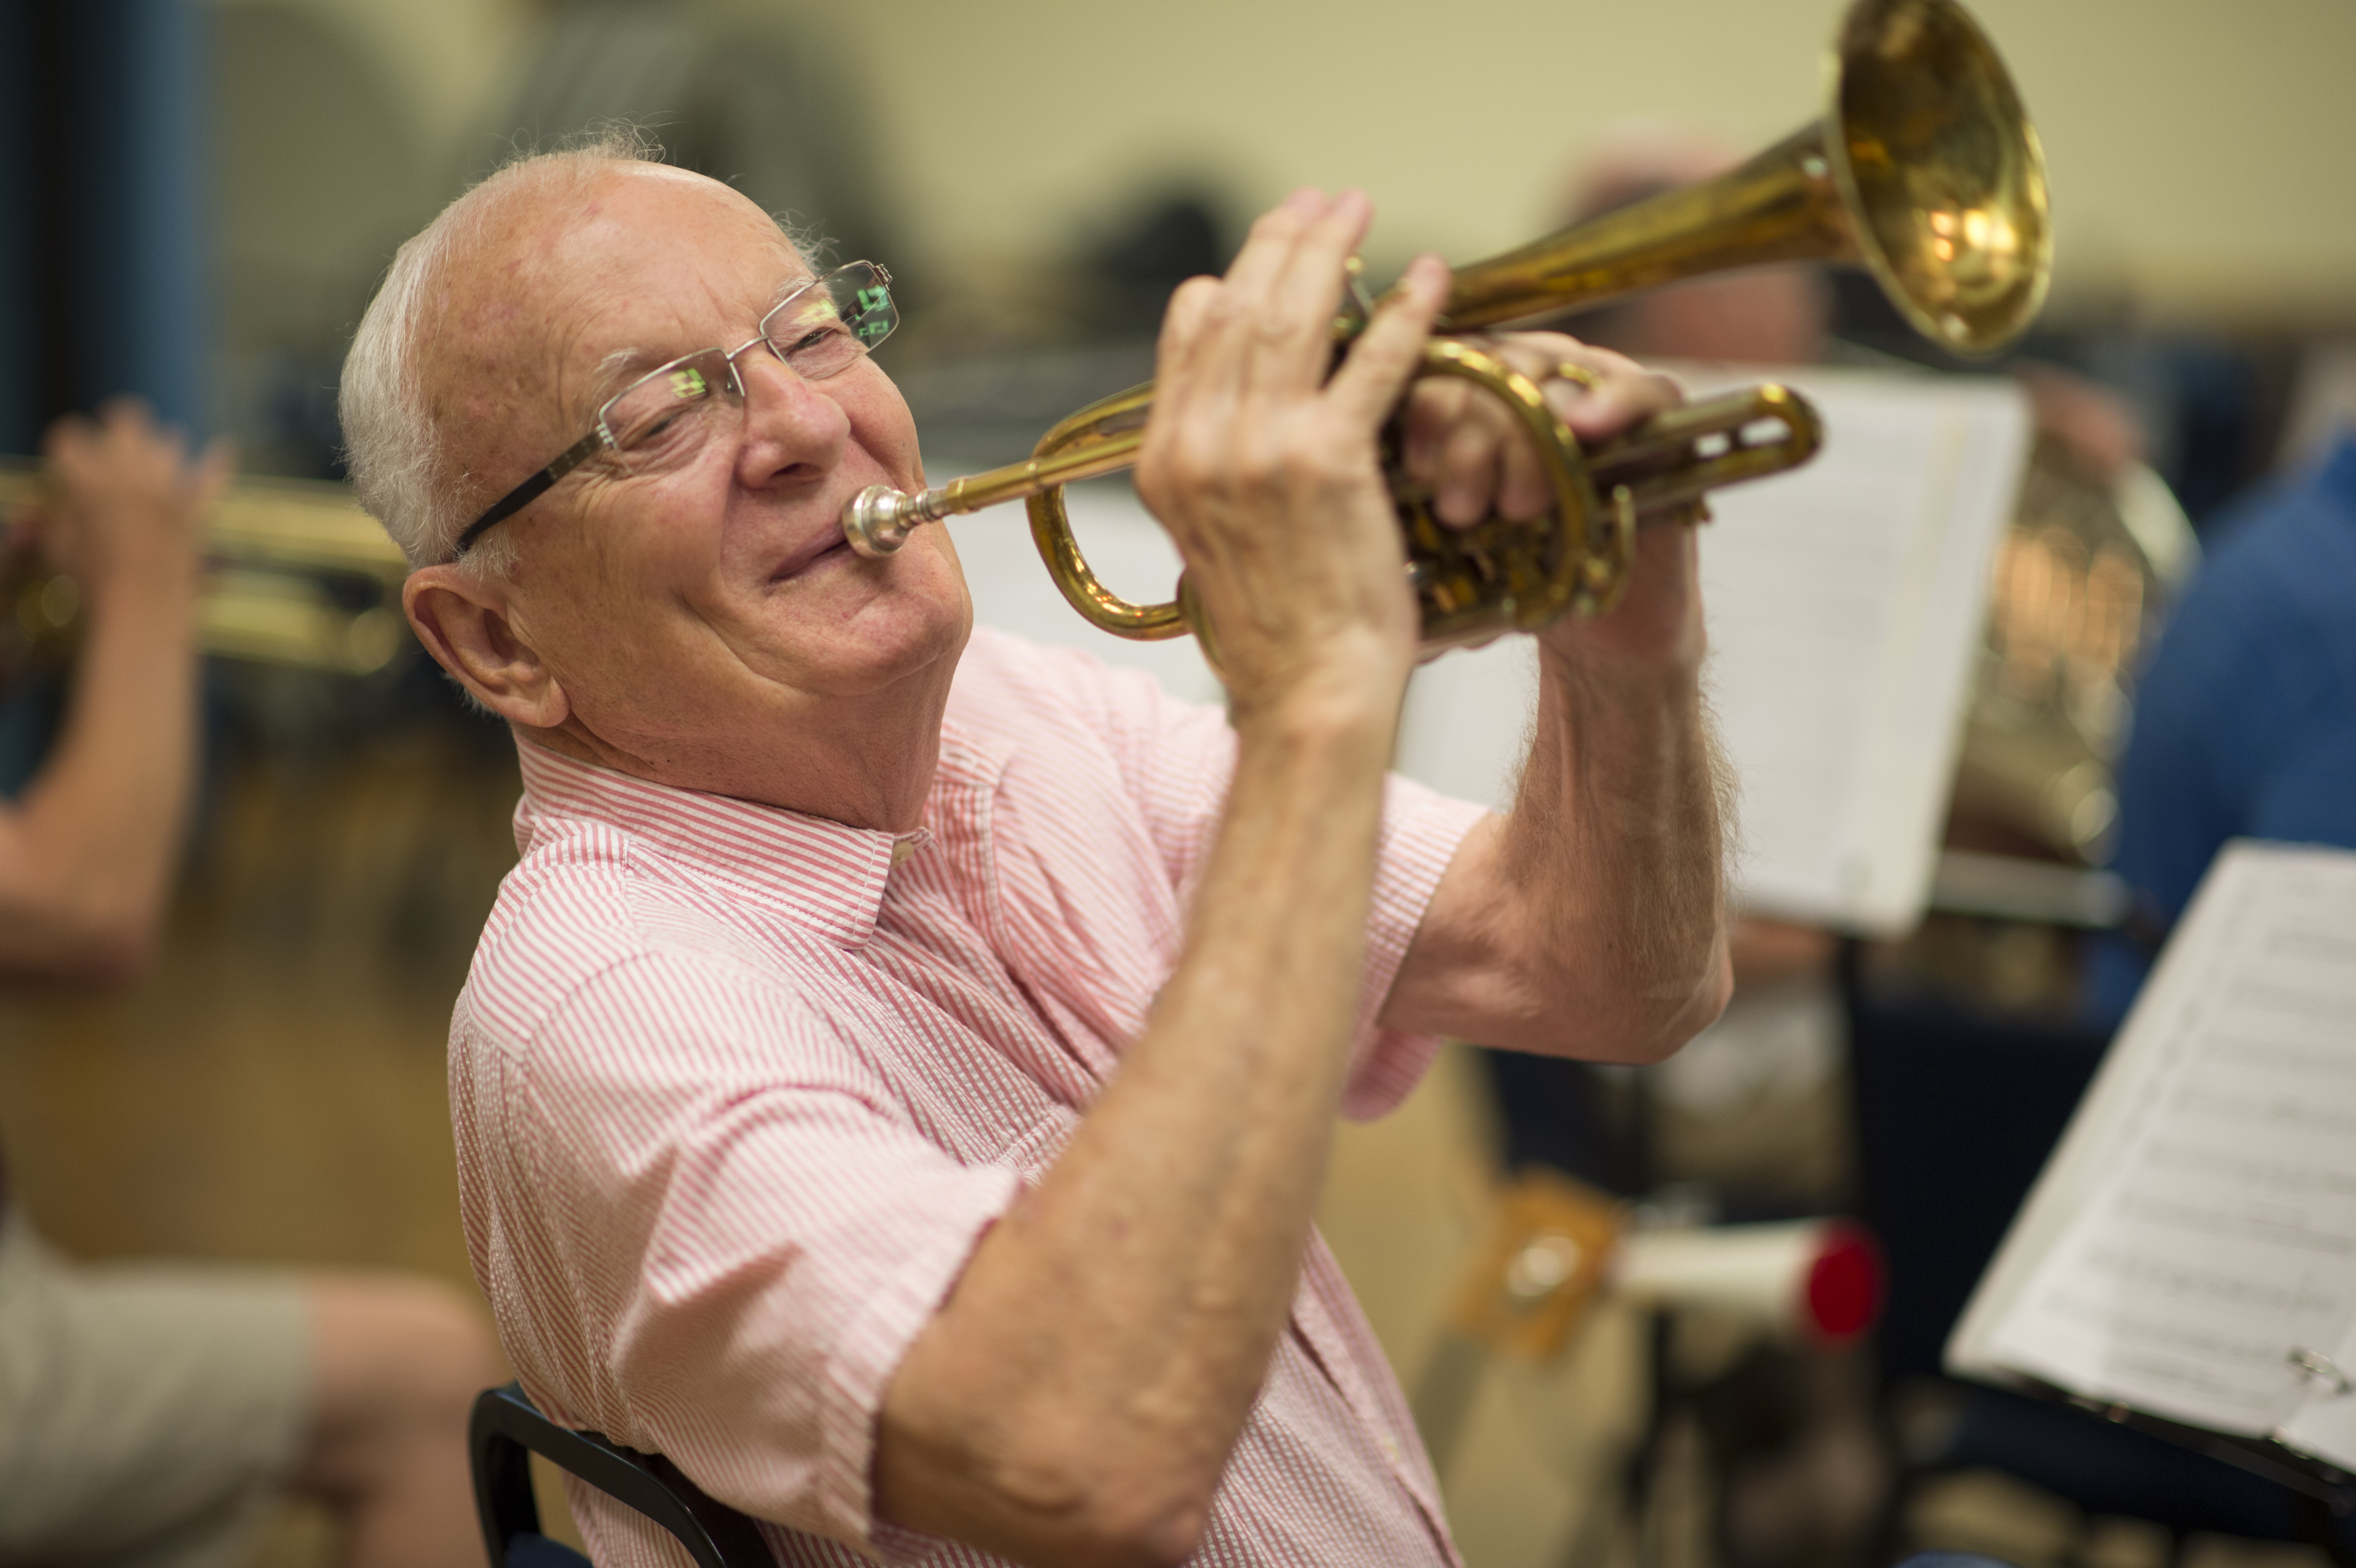 For 20 years, Denton's New Horizons Band has helped North Texas seniors get in tune with their musical talents